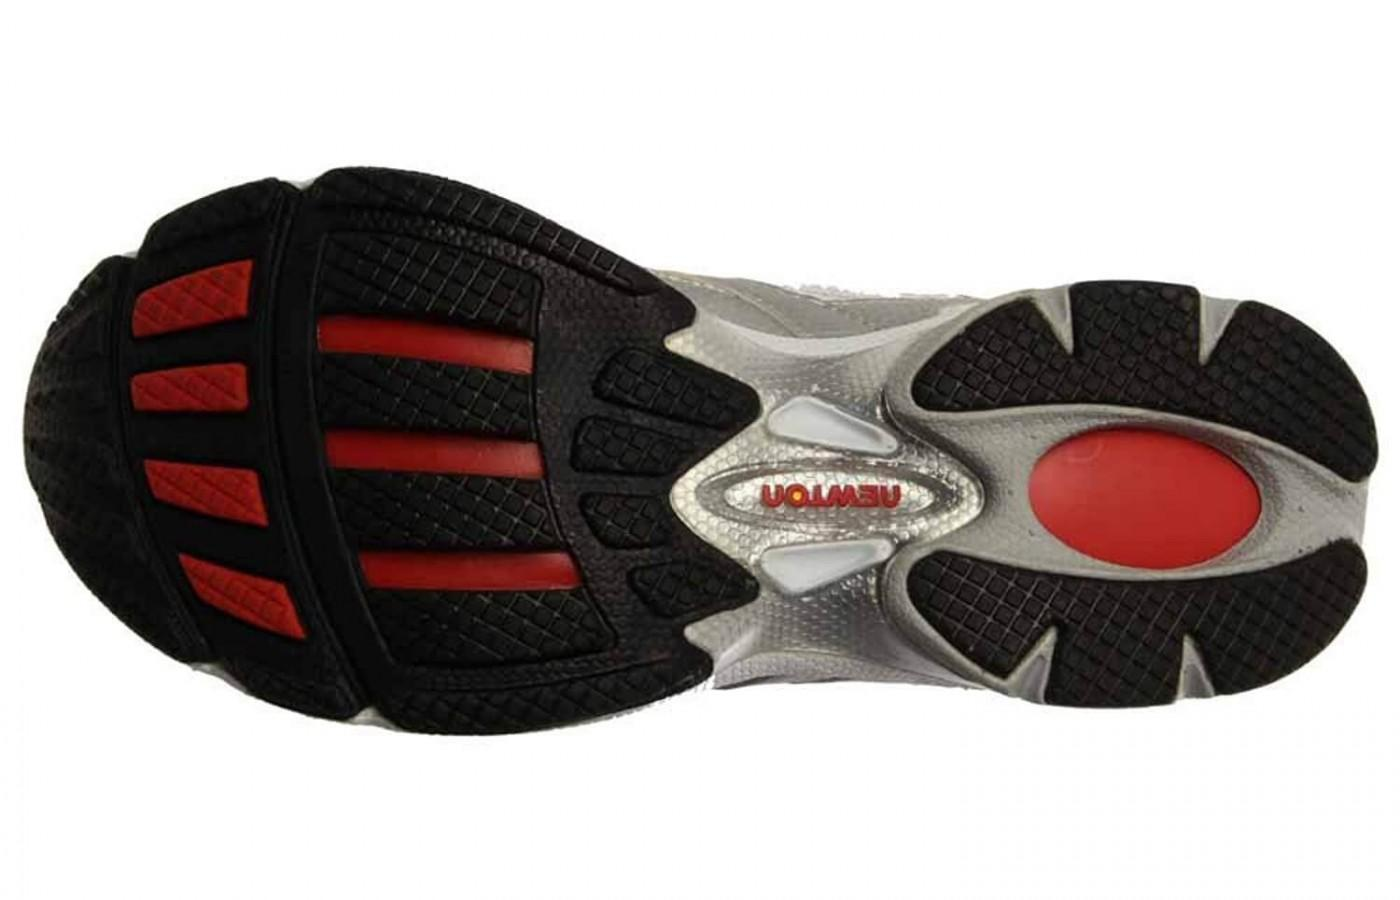 The outsole features a durable carbon rubber and flex grooves.